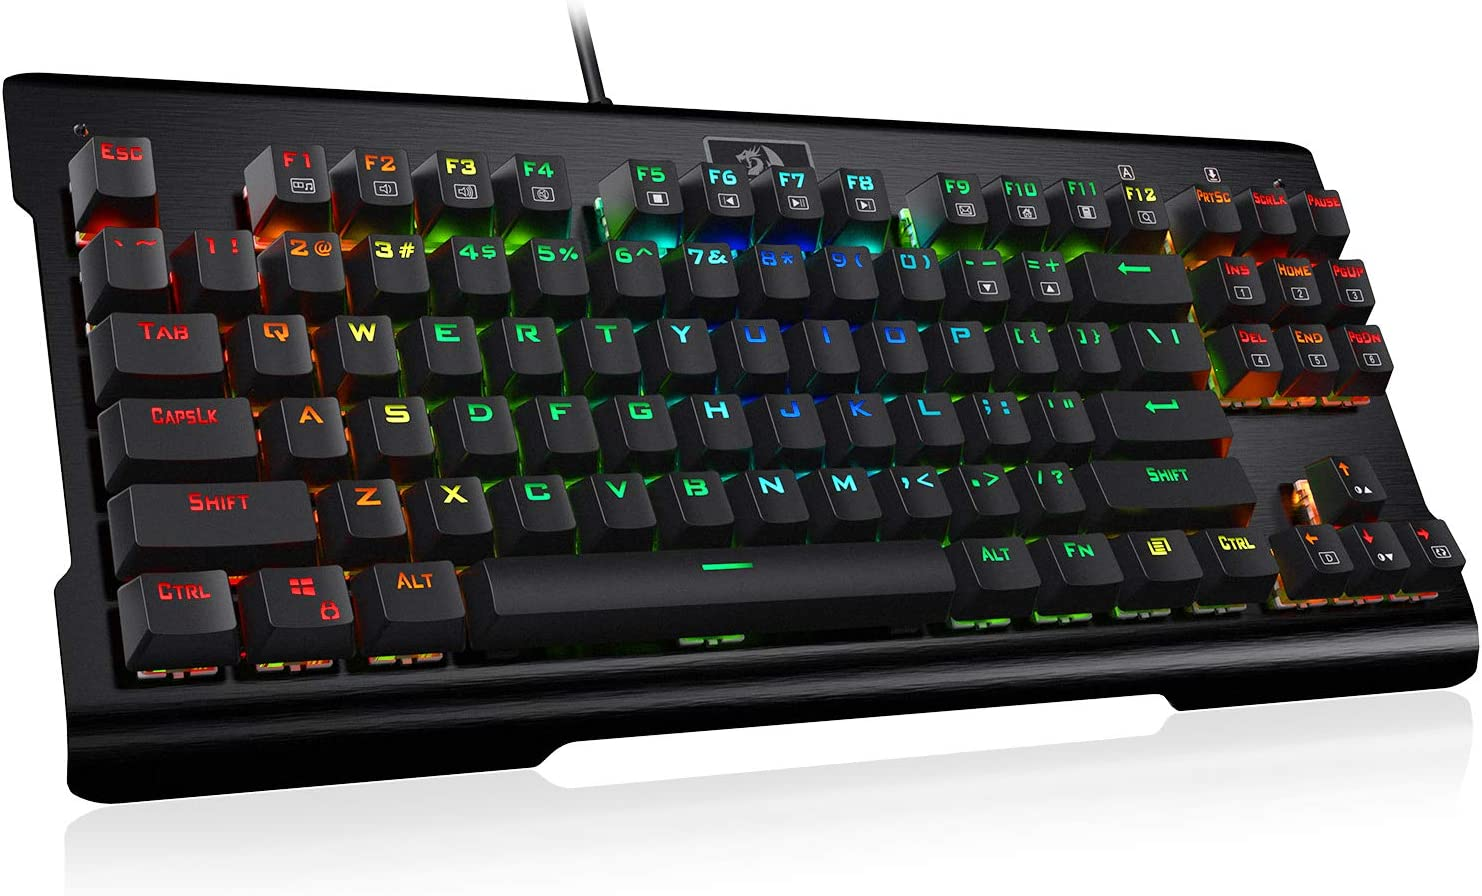 Redragon K561 VISNU Mechanical Gaming Keyboard, Anti-ghosting 87 Keys, RGB Backlit, Wired Compact Keyboard with Clicky Blue Switches for Laptop, Windows, PC Games